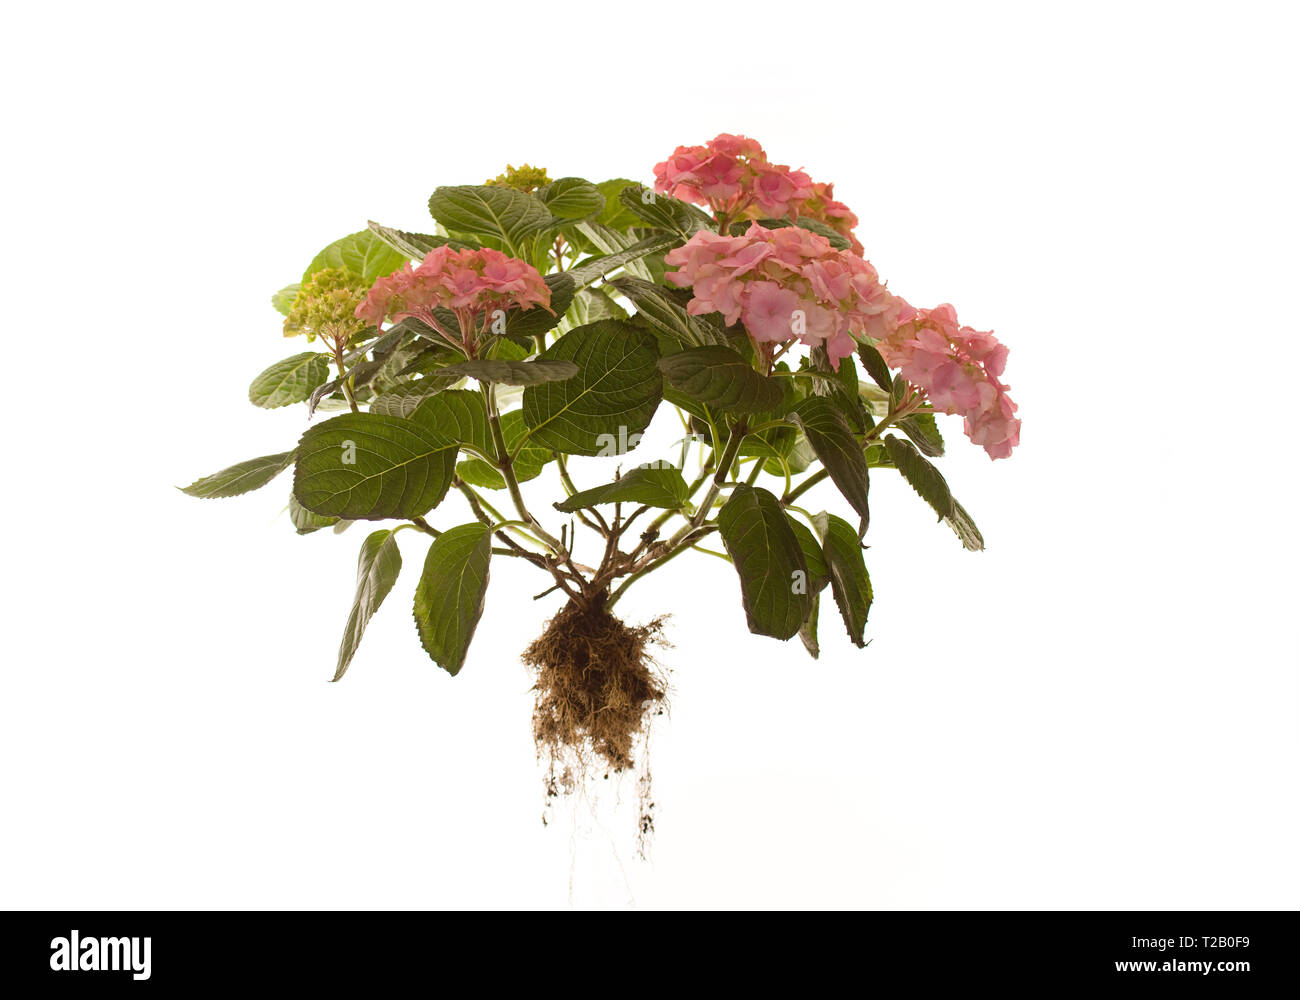 Whole Hydrangea Macrophylla Rosita on isolated white background - Stock Image